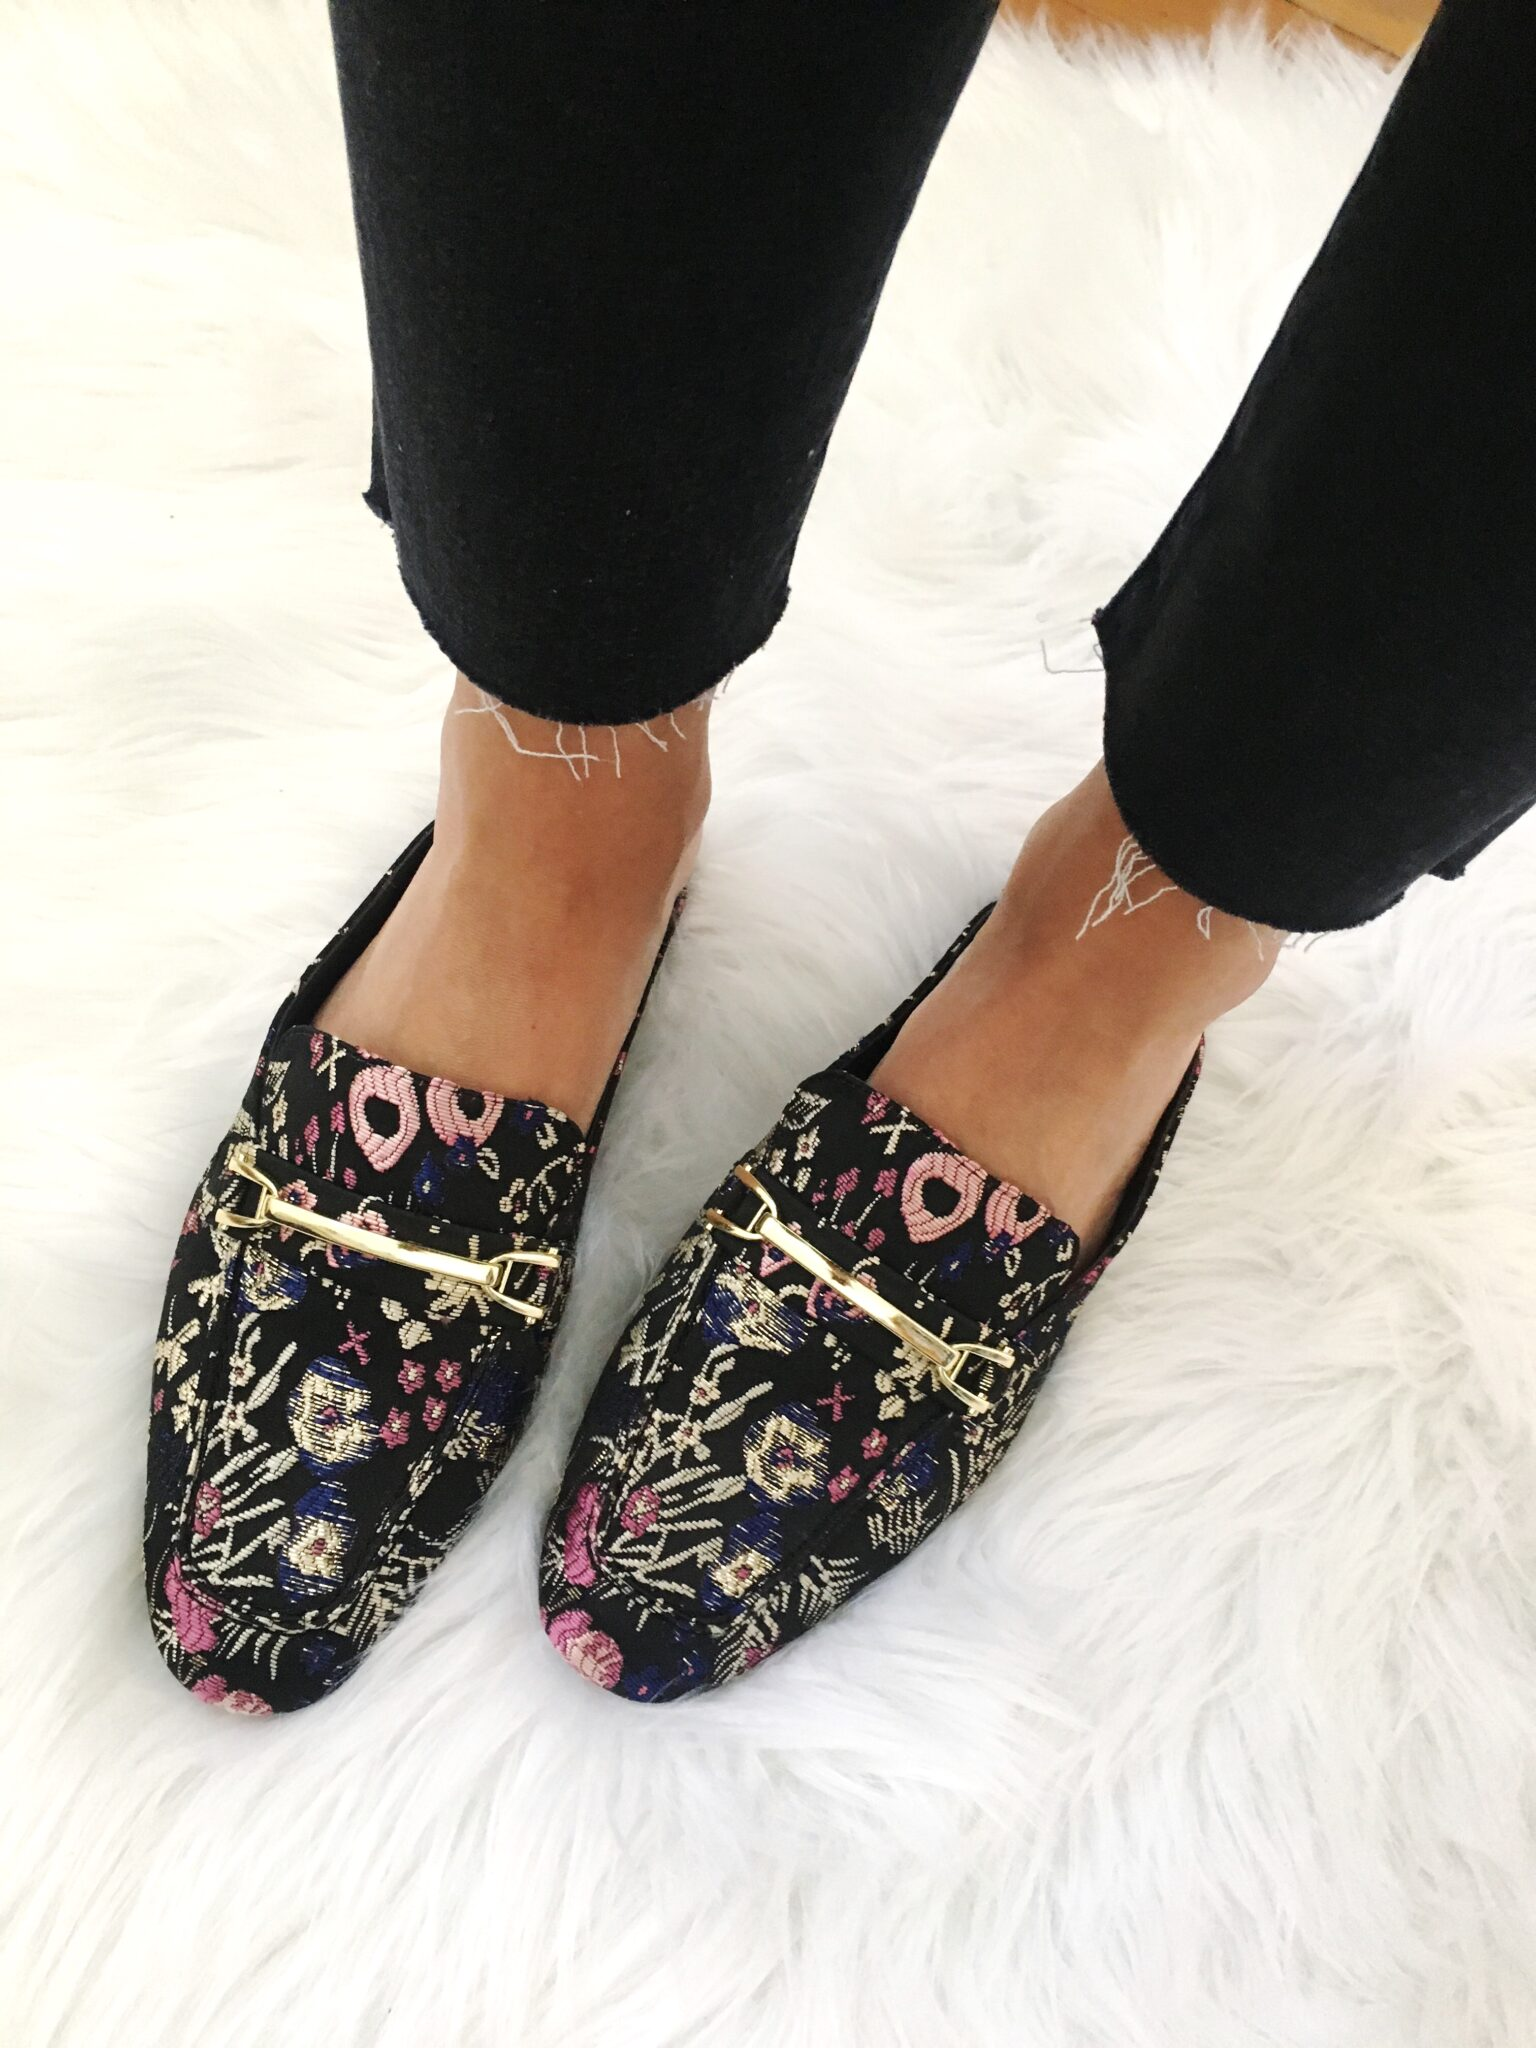 Embroidered Slides for Fall - Nordstrom Anniversary Sale Try On Session by popular Washington DC style blogger Cobalt Chronicles